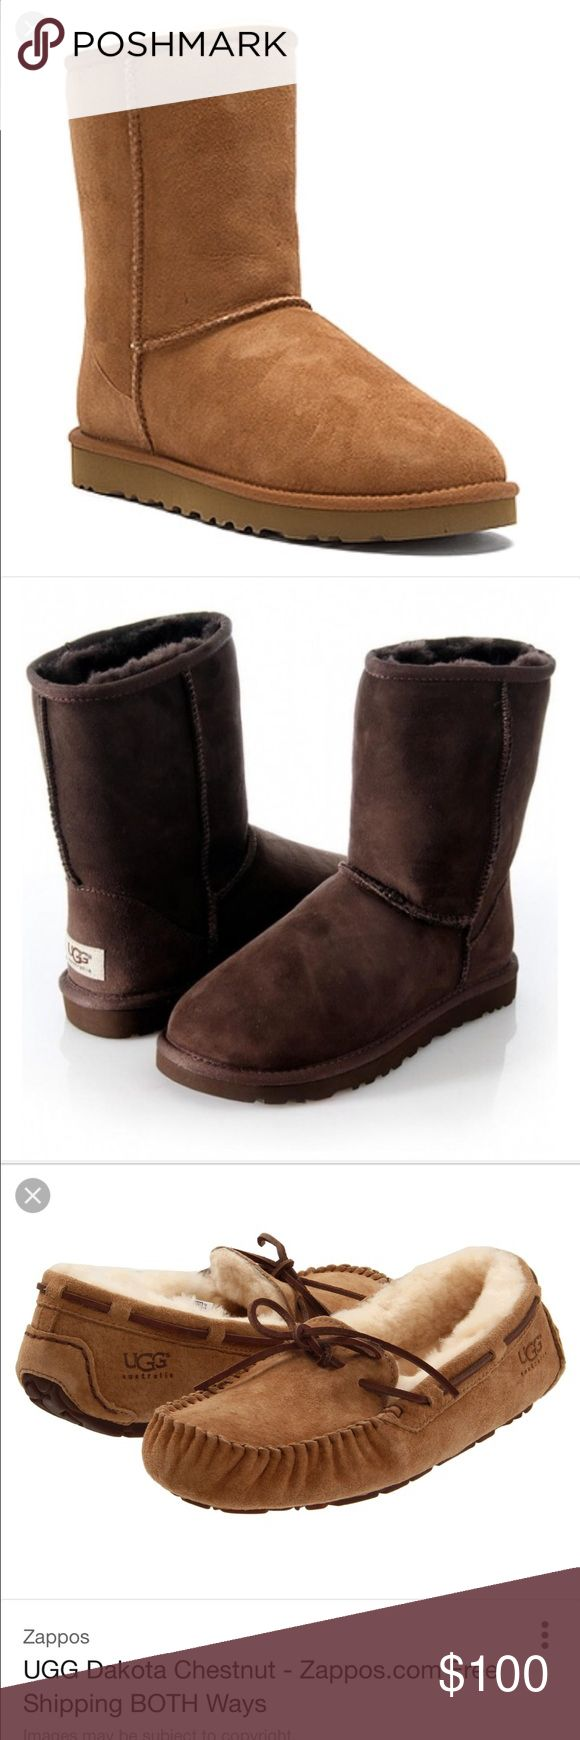 classic short uggs size 9